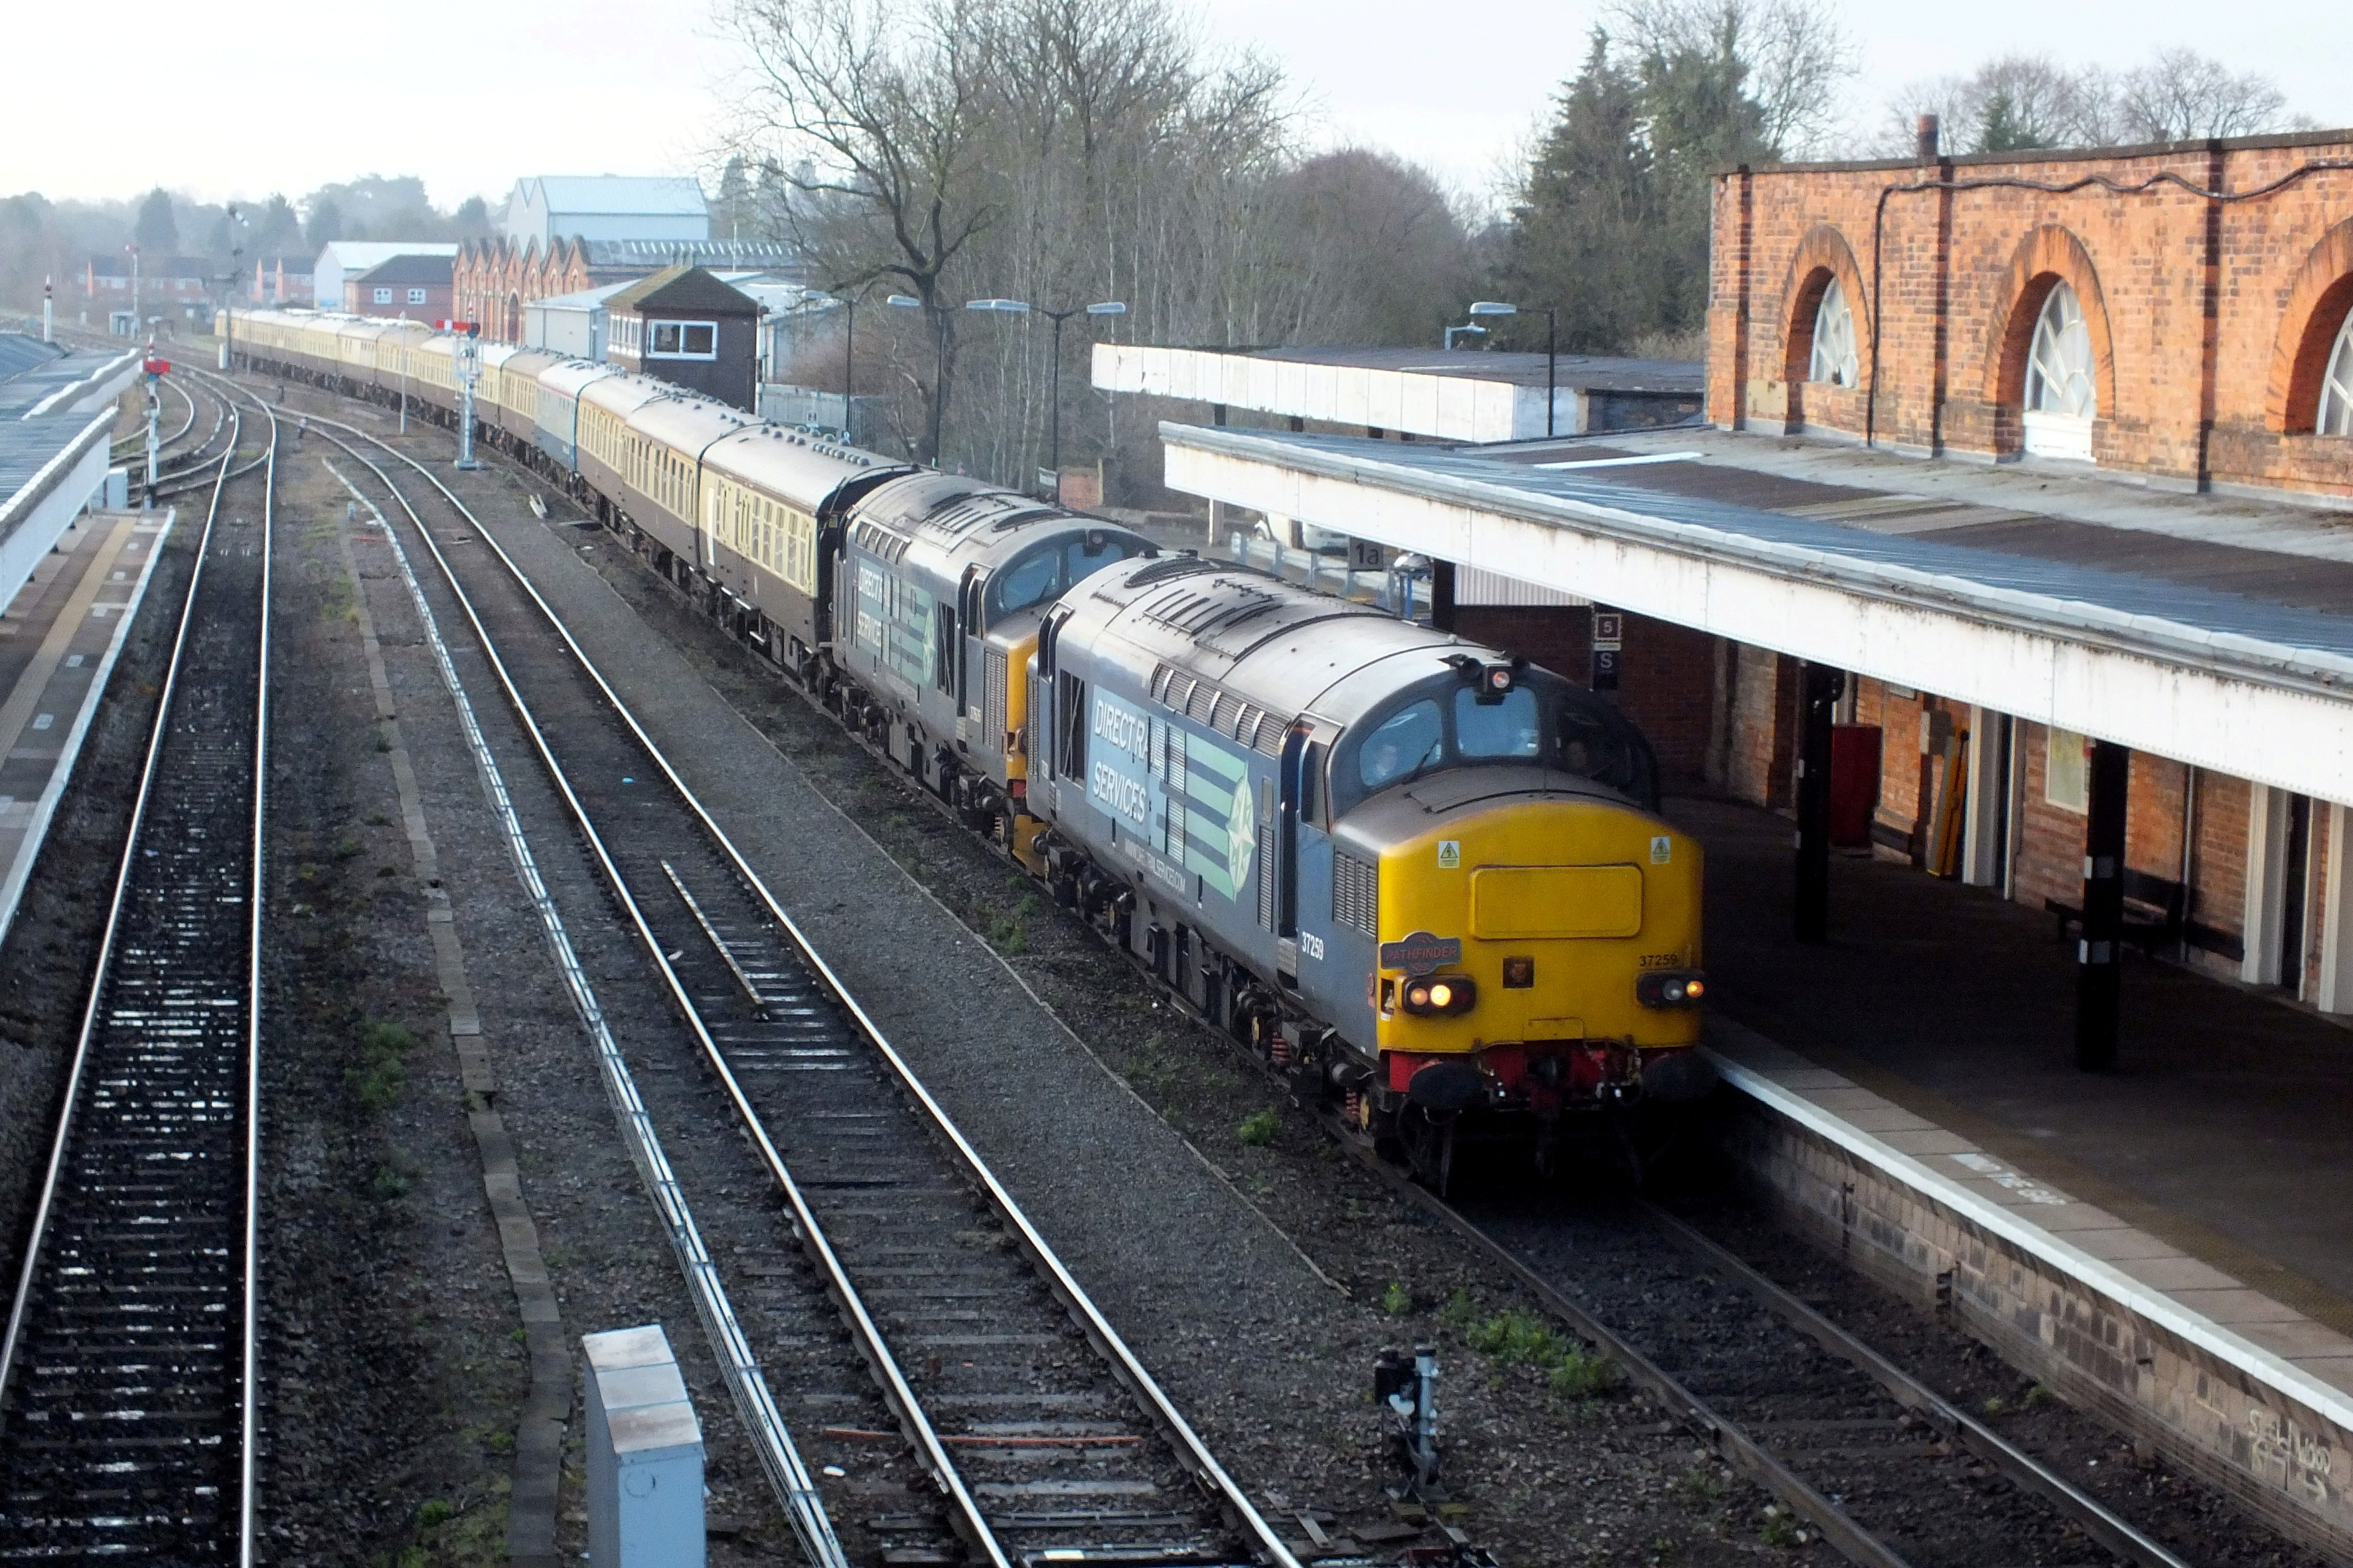 30 March 2018 Shrub Hill 132.jpg